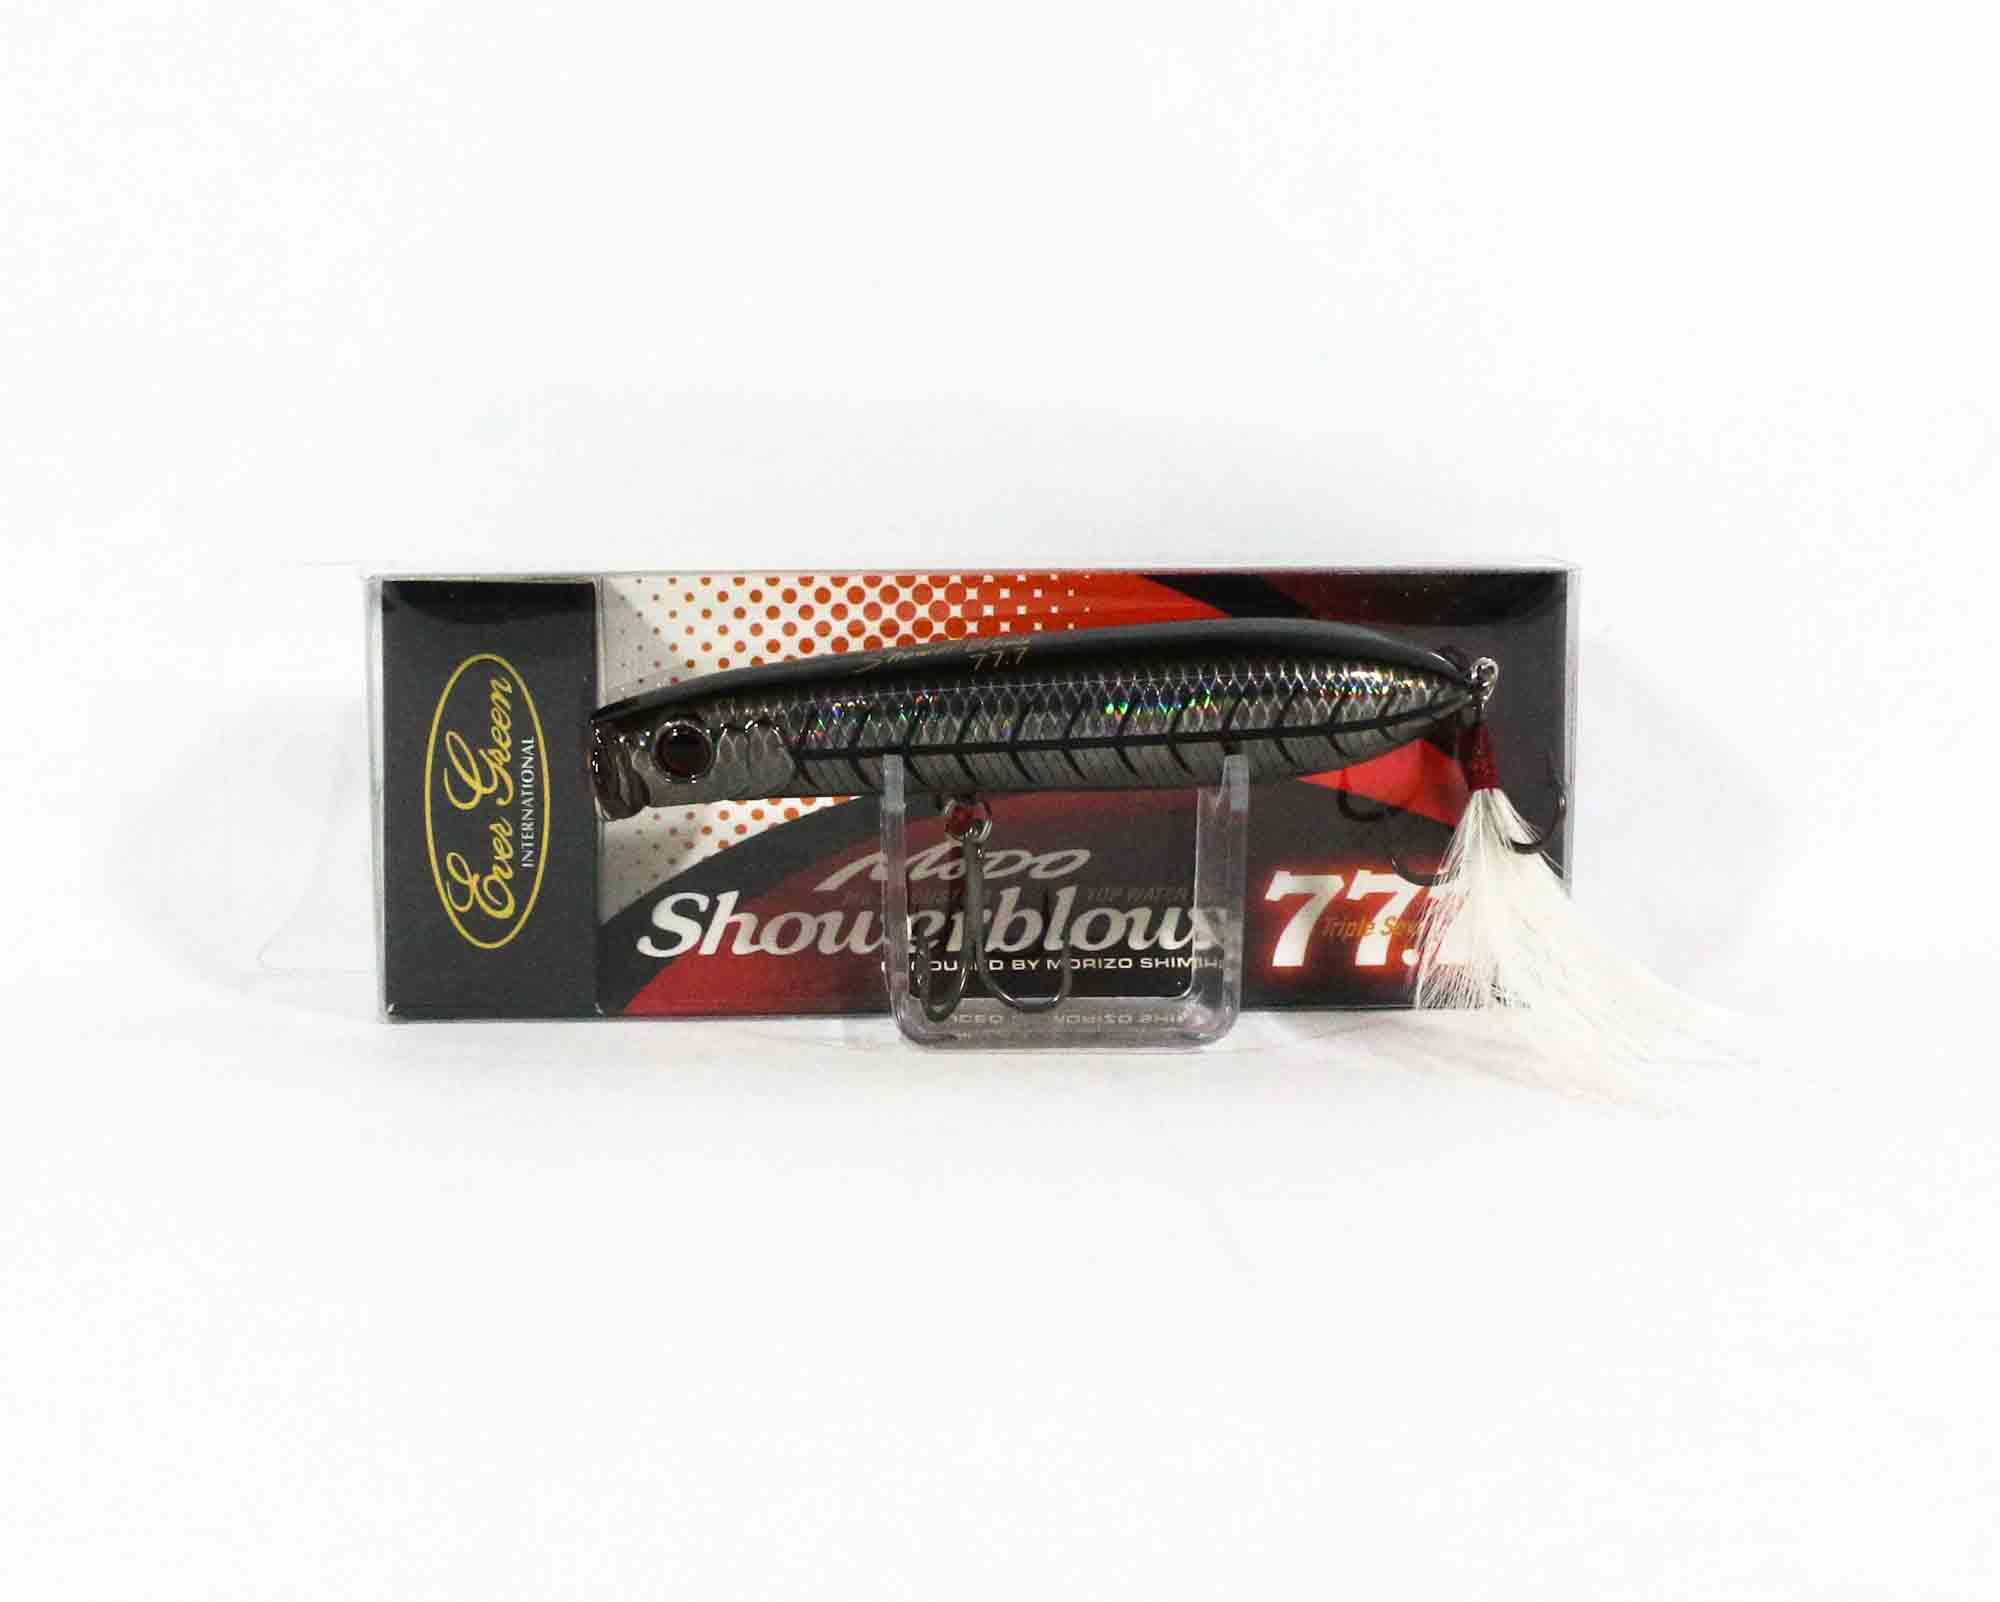 Evergreen Shower Blows 77.7 Pencil Floating Lure 619 (3732)